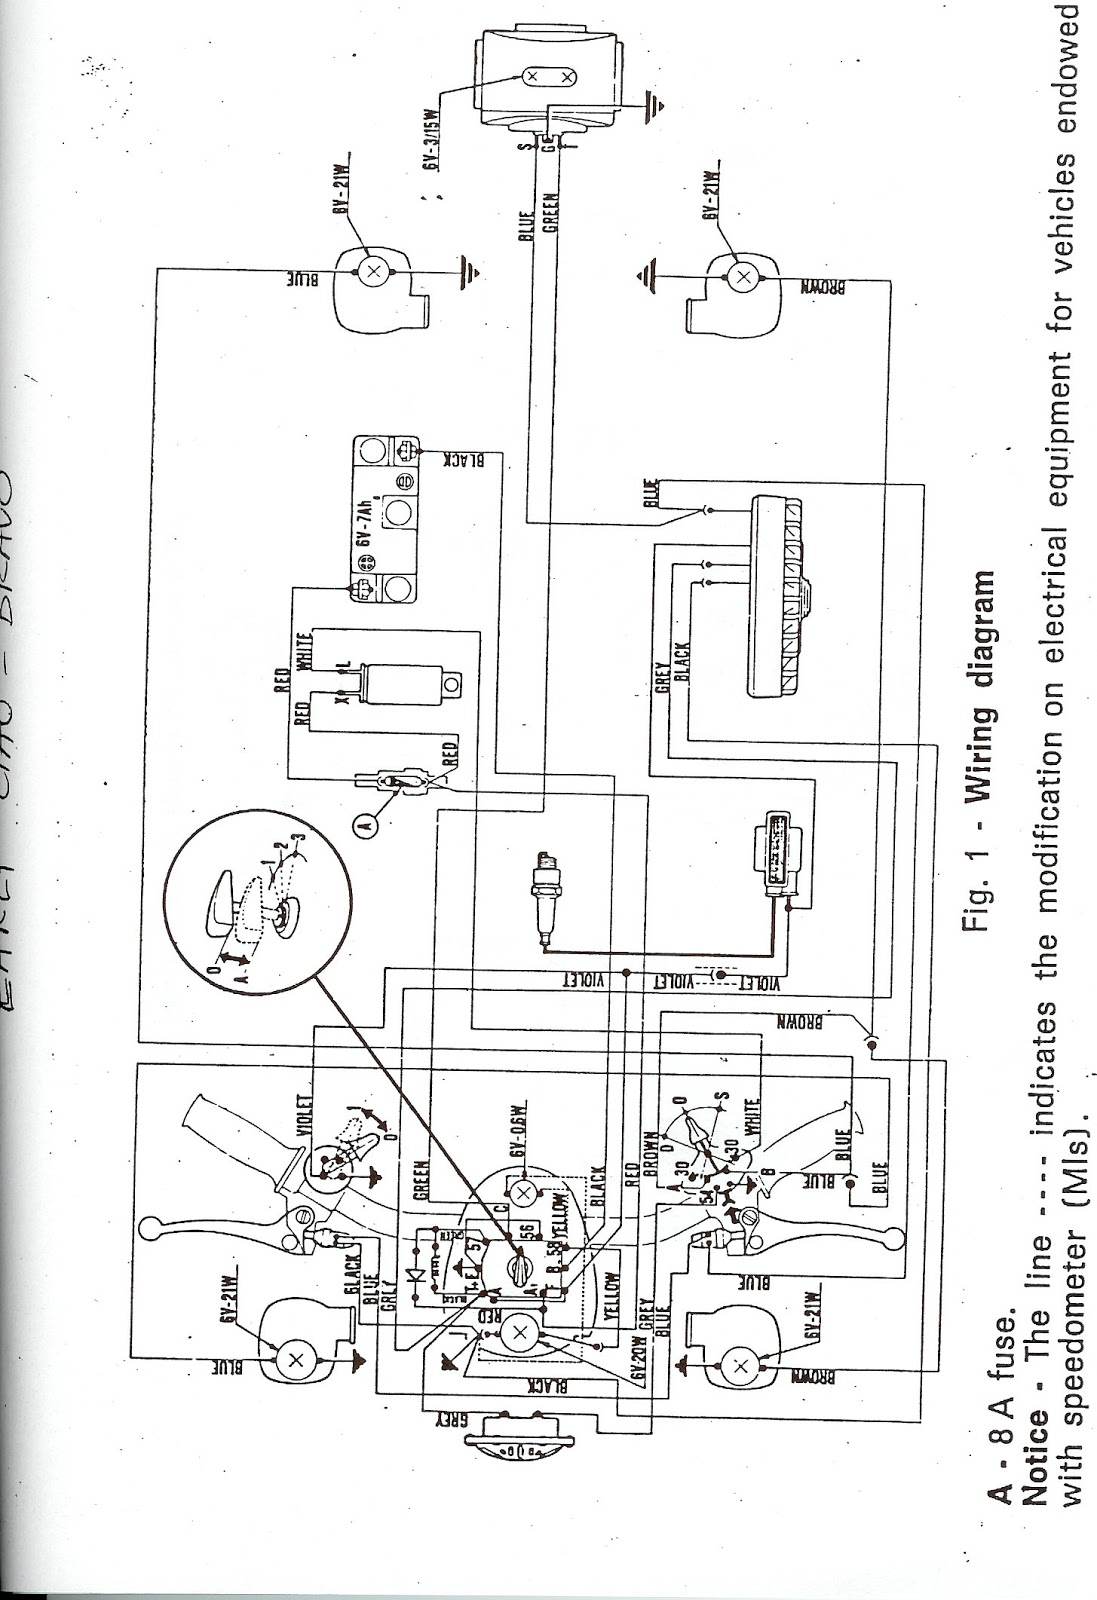 1149484169_vespa_early_ciao_bravo deadped vespa wiring in a nutshell peugeot boxer wiring diagram download at crackthecode.co